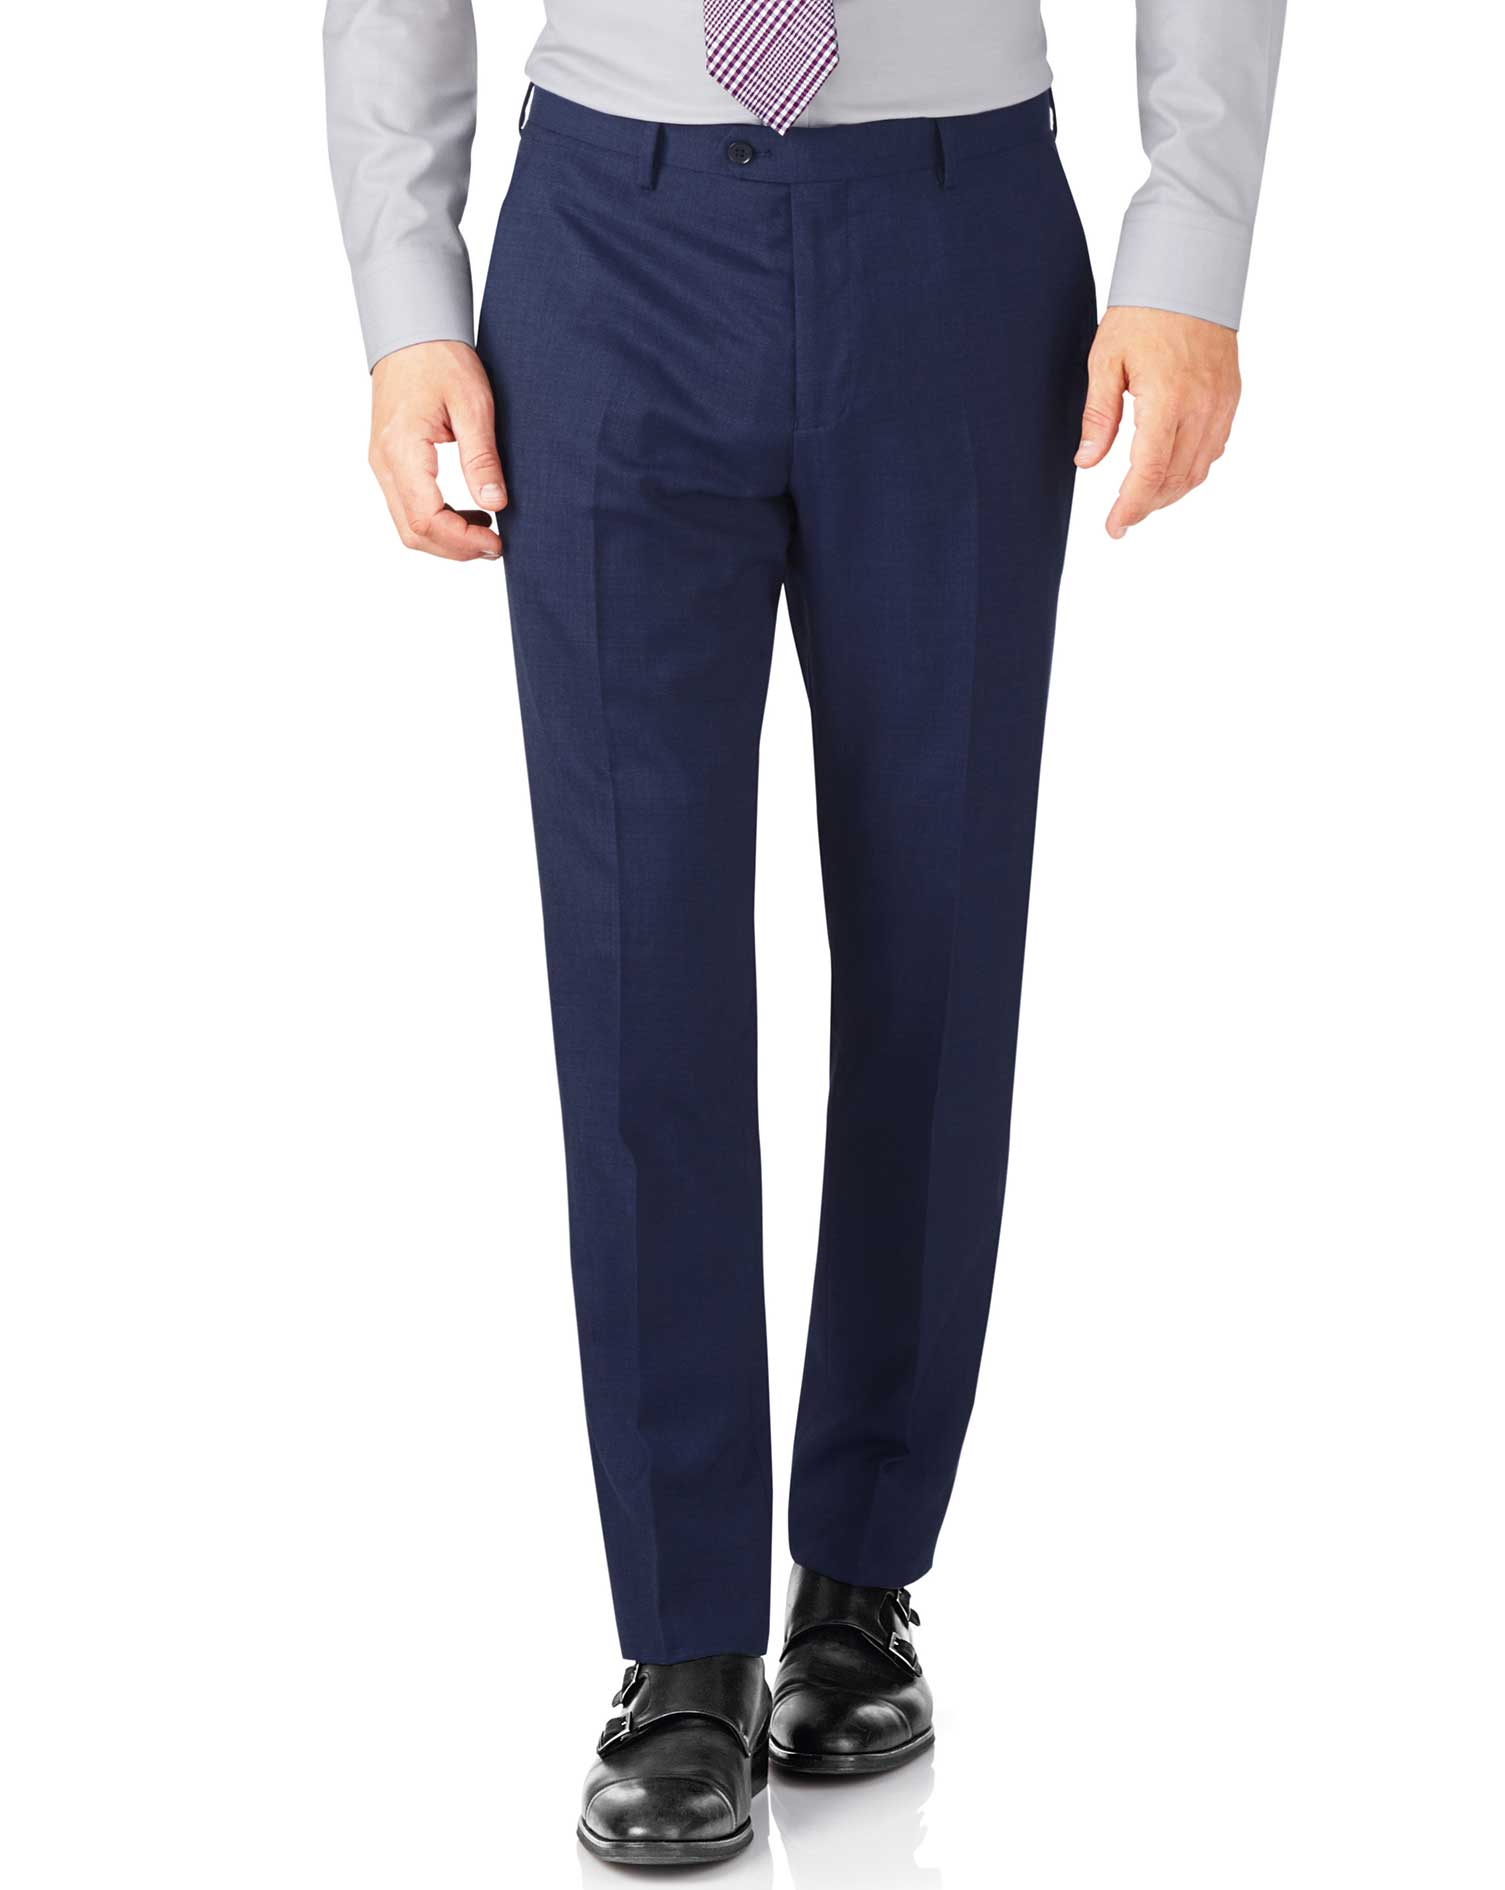 Indigo Slim Fit End-On-End Business Suit Trouser Size W42 L38 by Charles Tyrwhitt